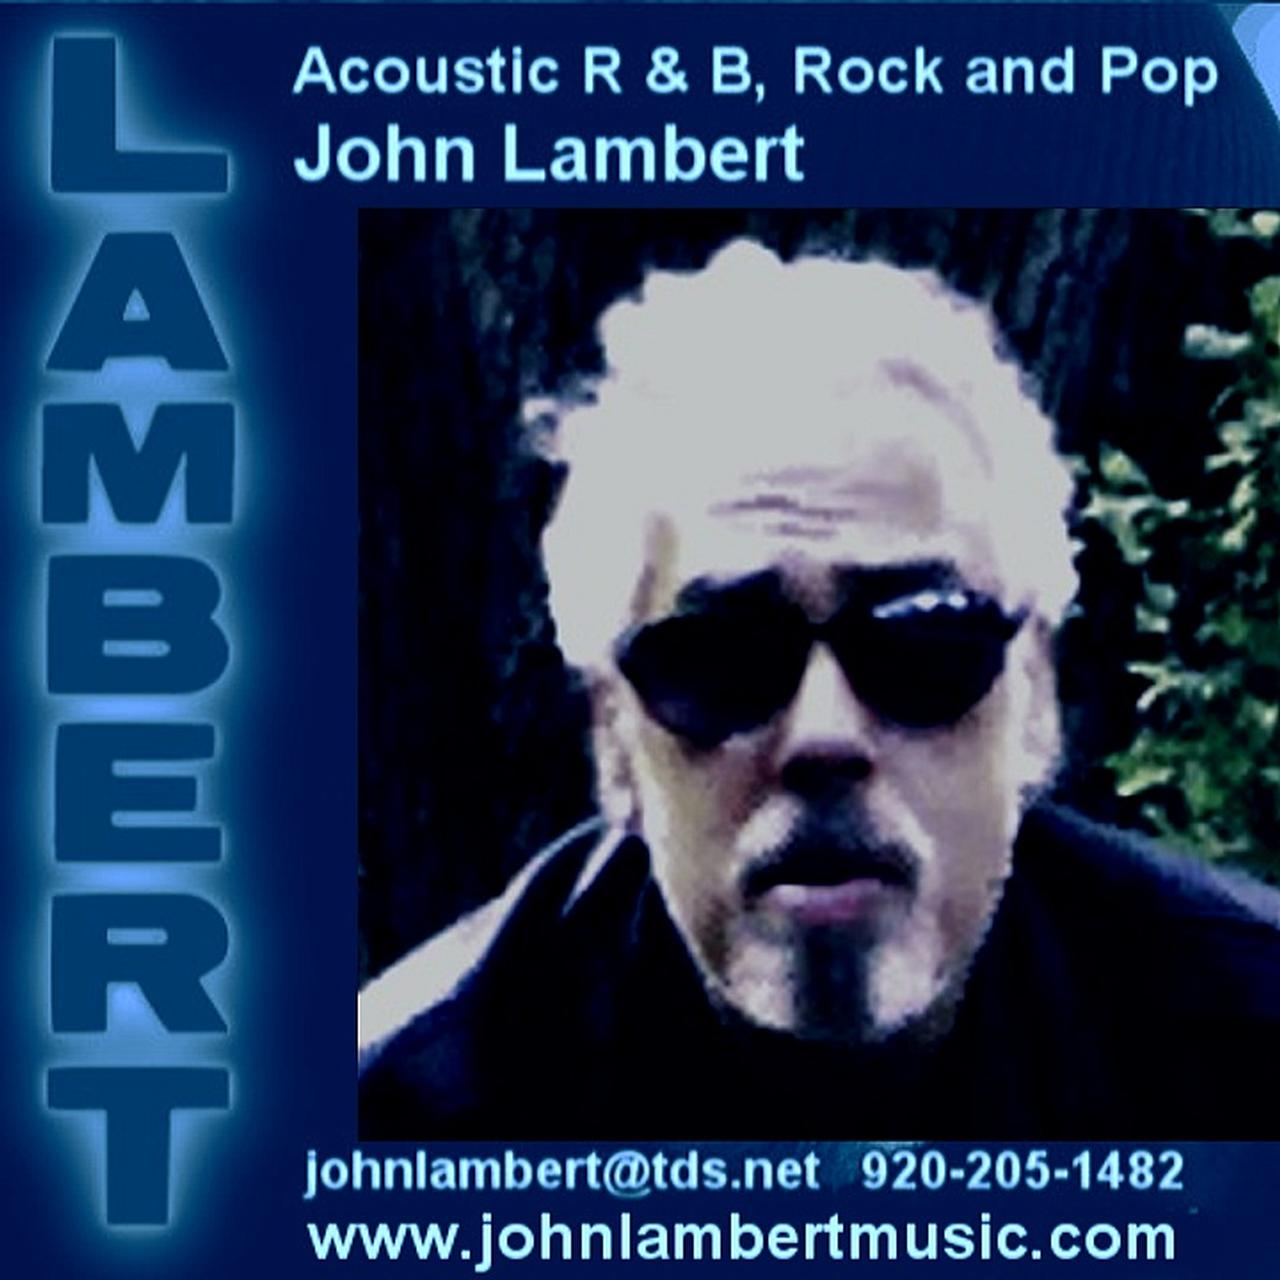 John Lambert musician and entertainer